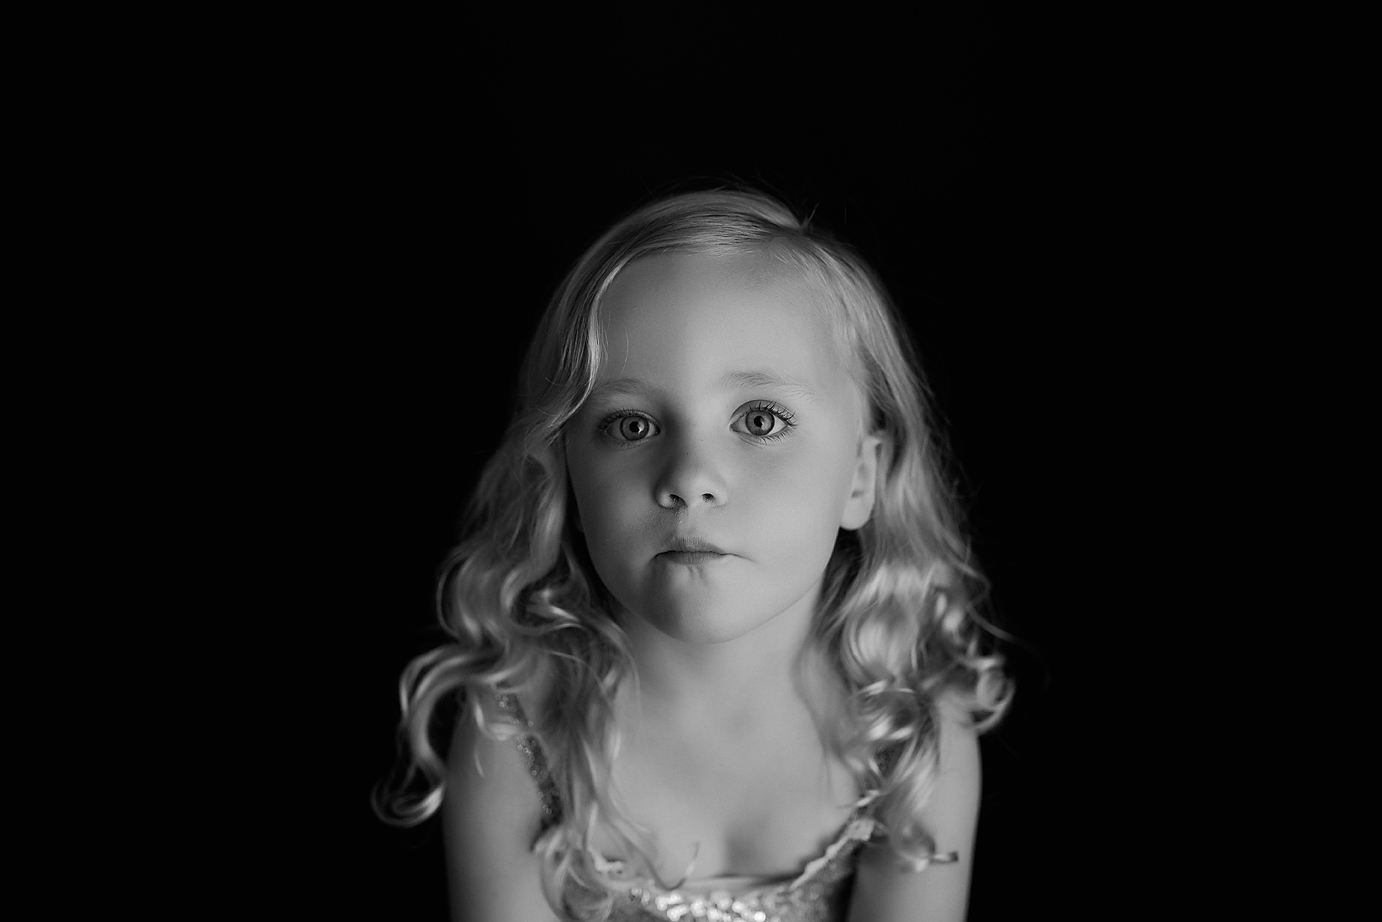 orange-county-child-photography-black-and-white-simple.jpg